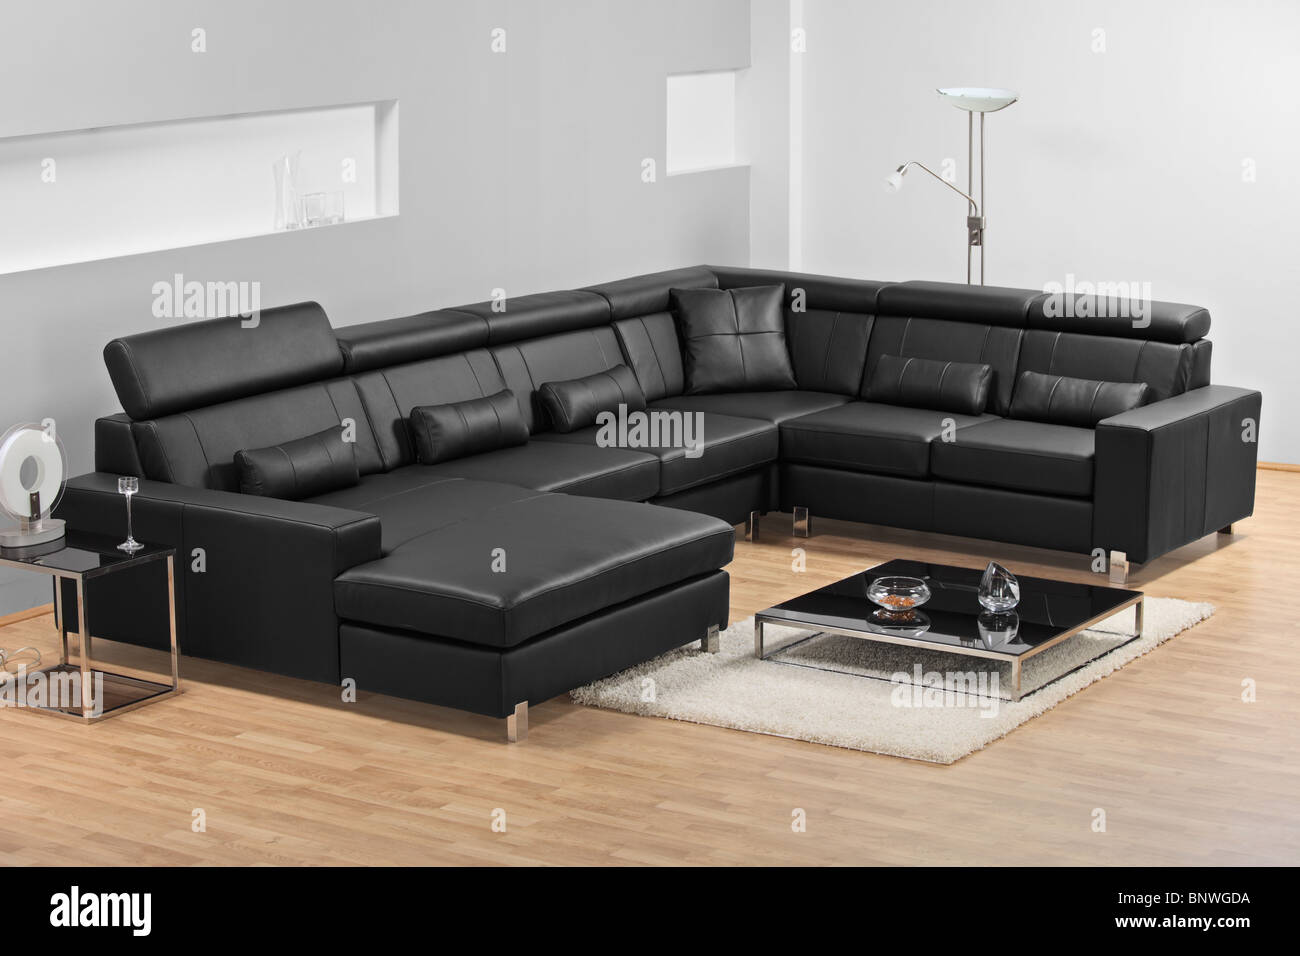 A view of a modern apartment with black leather sofa Stock Photo